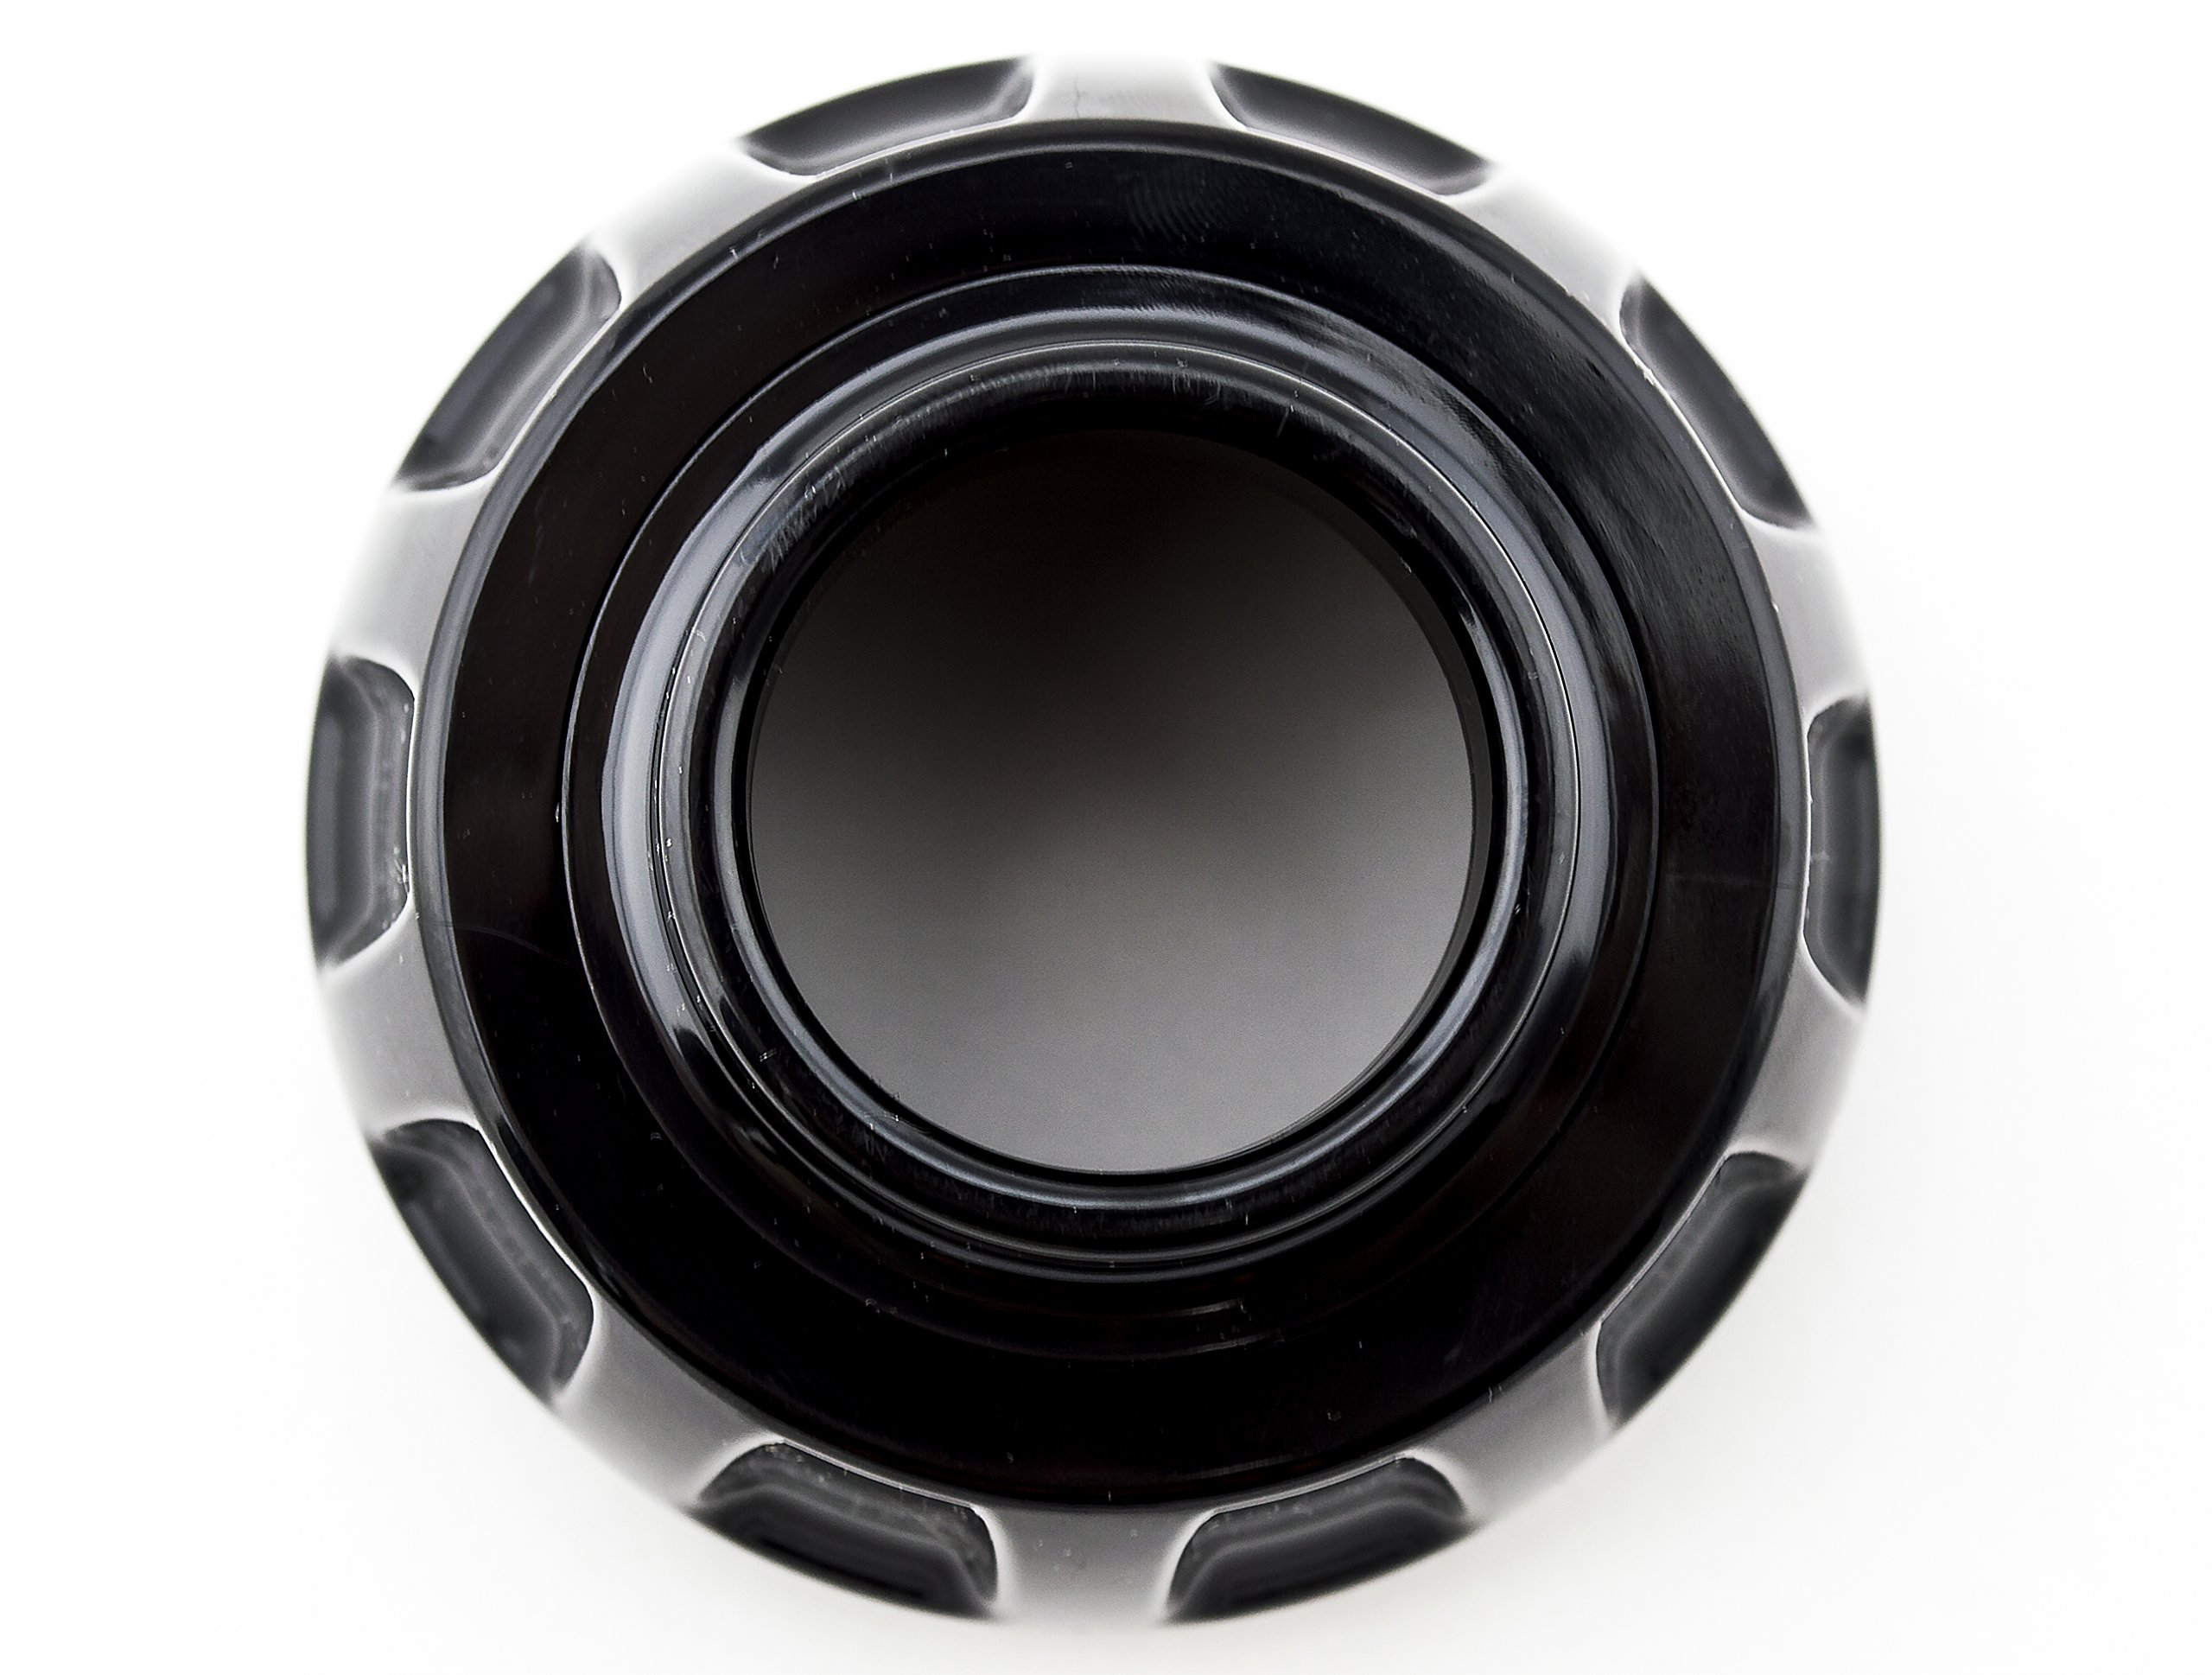 Omega 8006 Juicer End Cap Replacement Part for Drum Unit #1 or #2 Black Color 8004 8003 8005